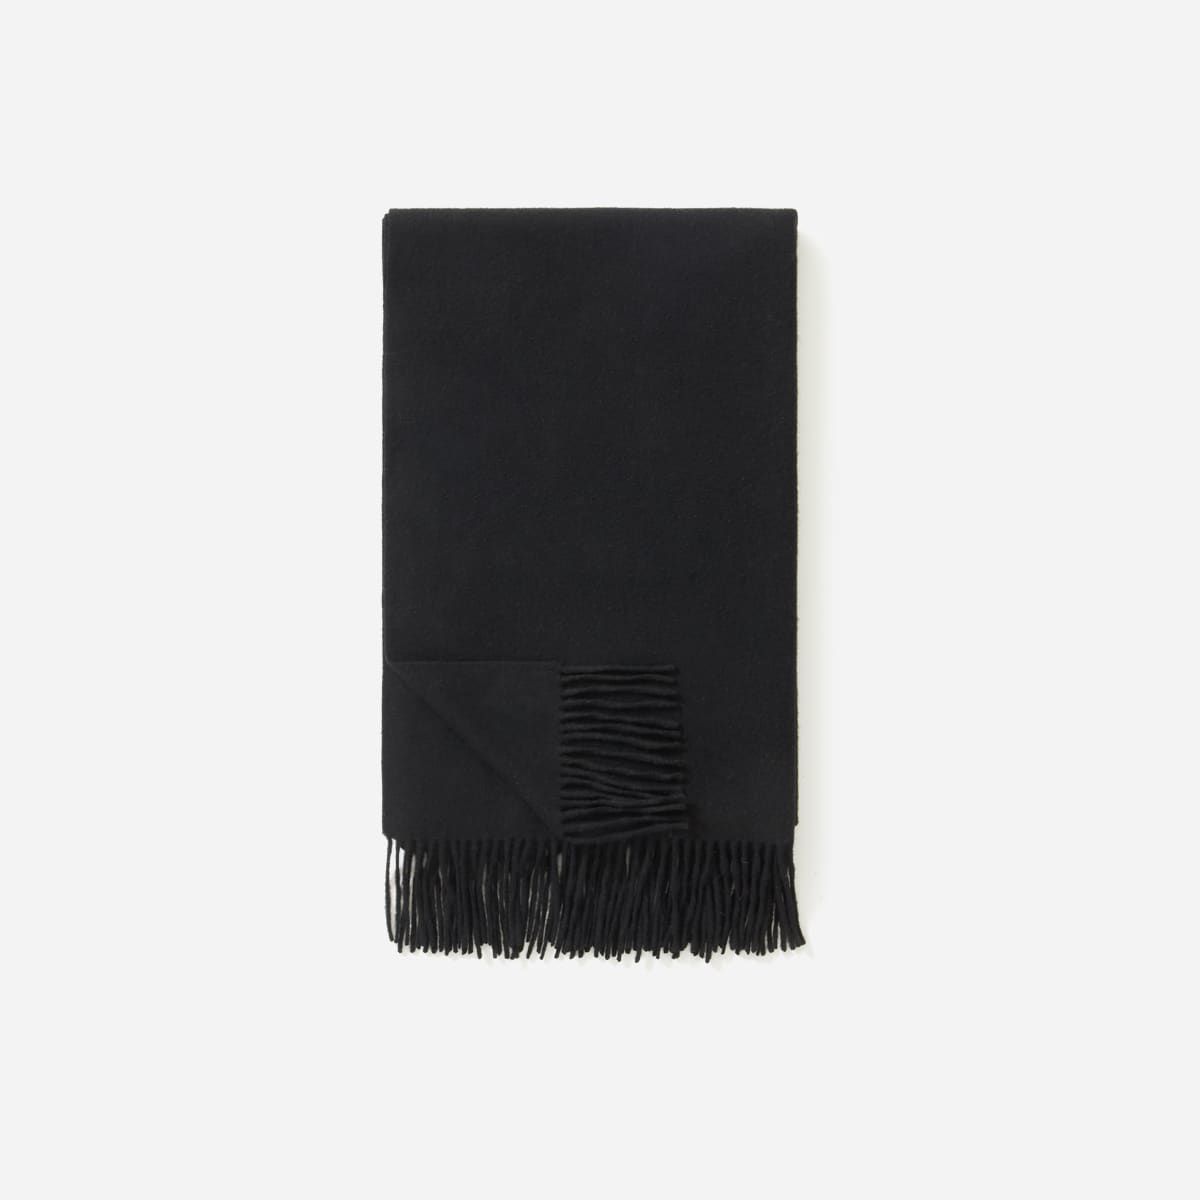 Image of: Women S Wool Cashmere Blanket Scarf Everlane